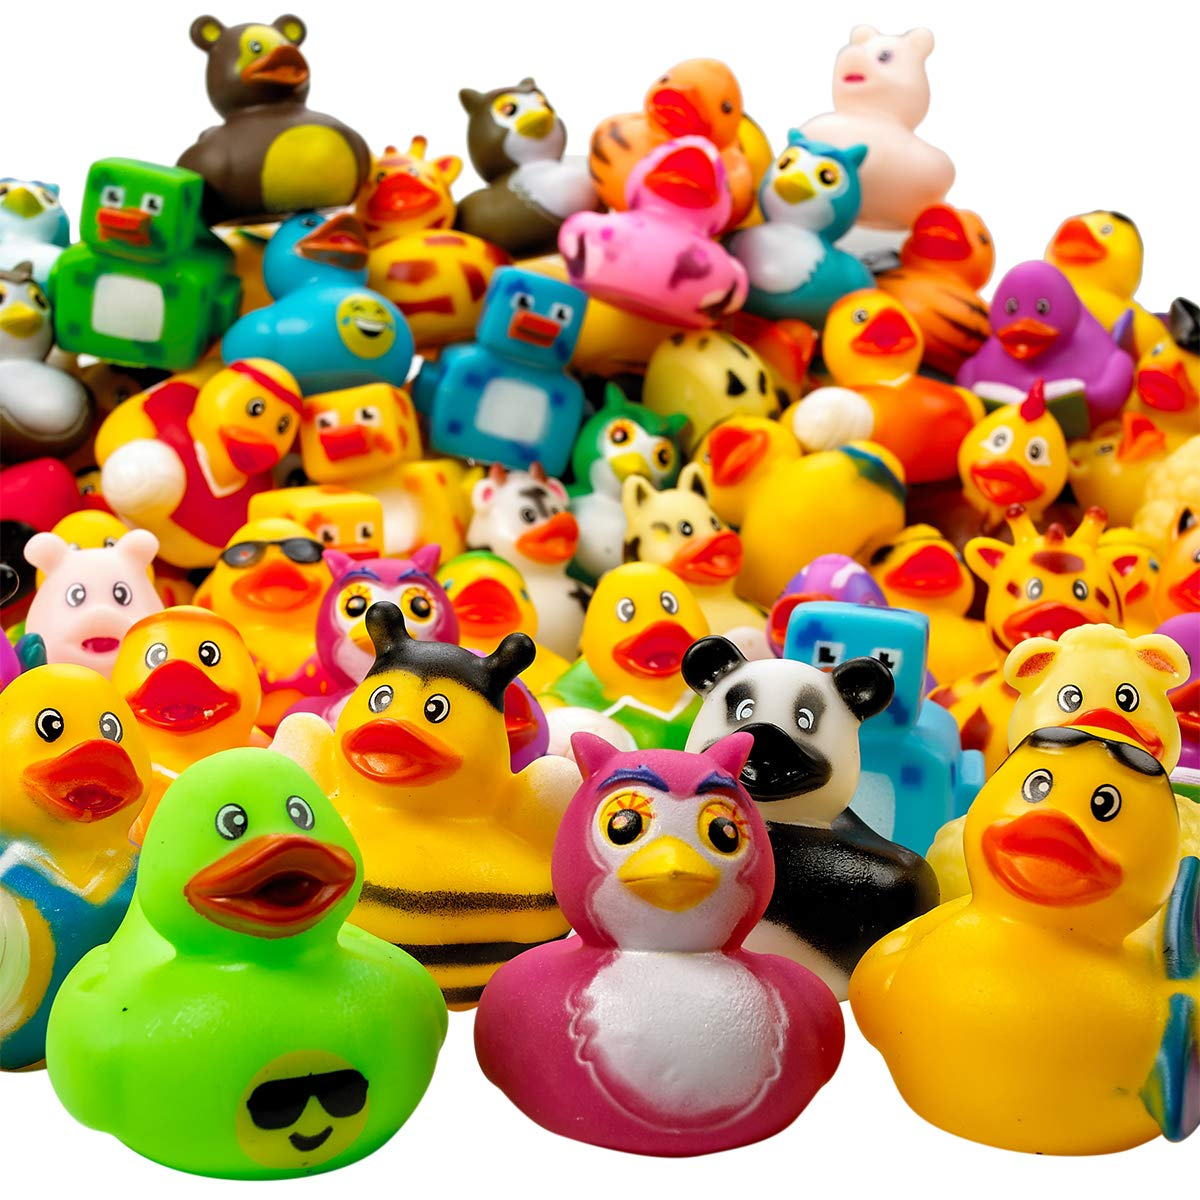 Kicko Assorted Rubber Duckies - 100 PC Bath Floater – Baby Showers Accessories – Bulk Ducks for Kids – Easter Party, Halloween Party Favors, Rubber Ducks Supplies and Favors